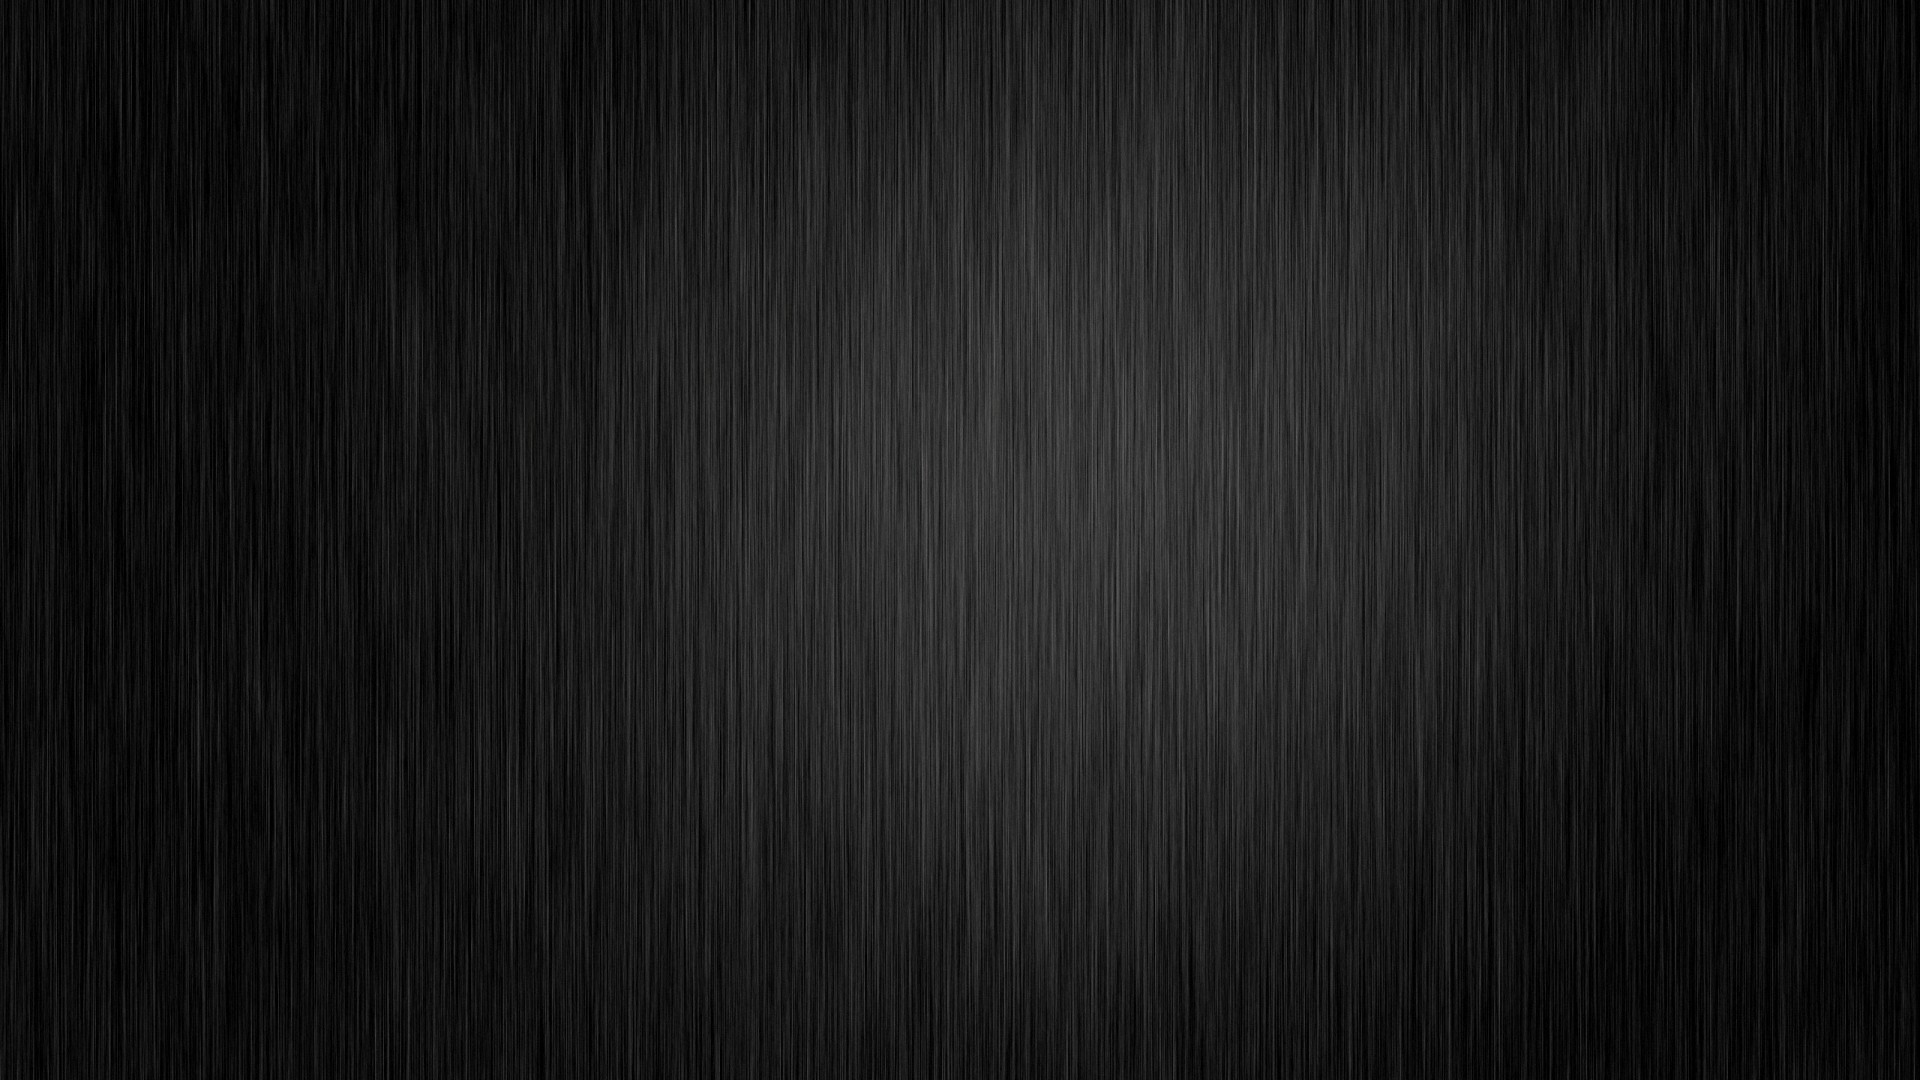 Res: 1920x1080, Wallpapers Pictures Free Metal Textures Source · Free  Texture Dark  Metal Wallpapers Full HD 1080p Backgrounds